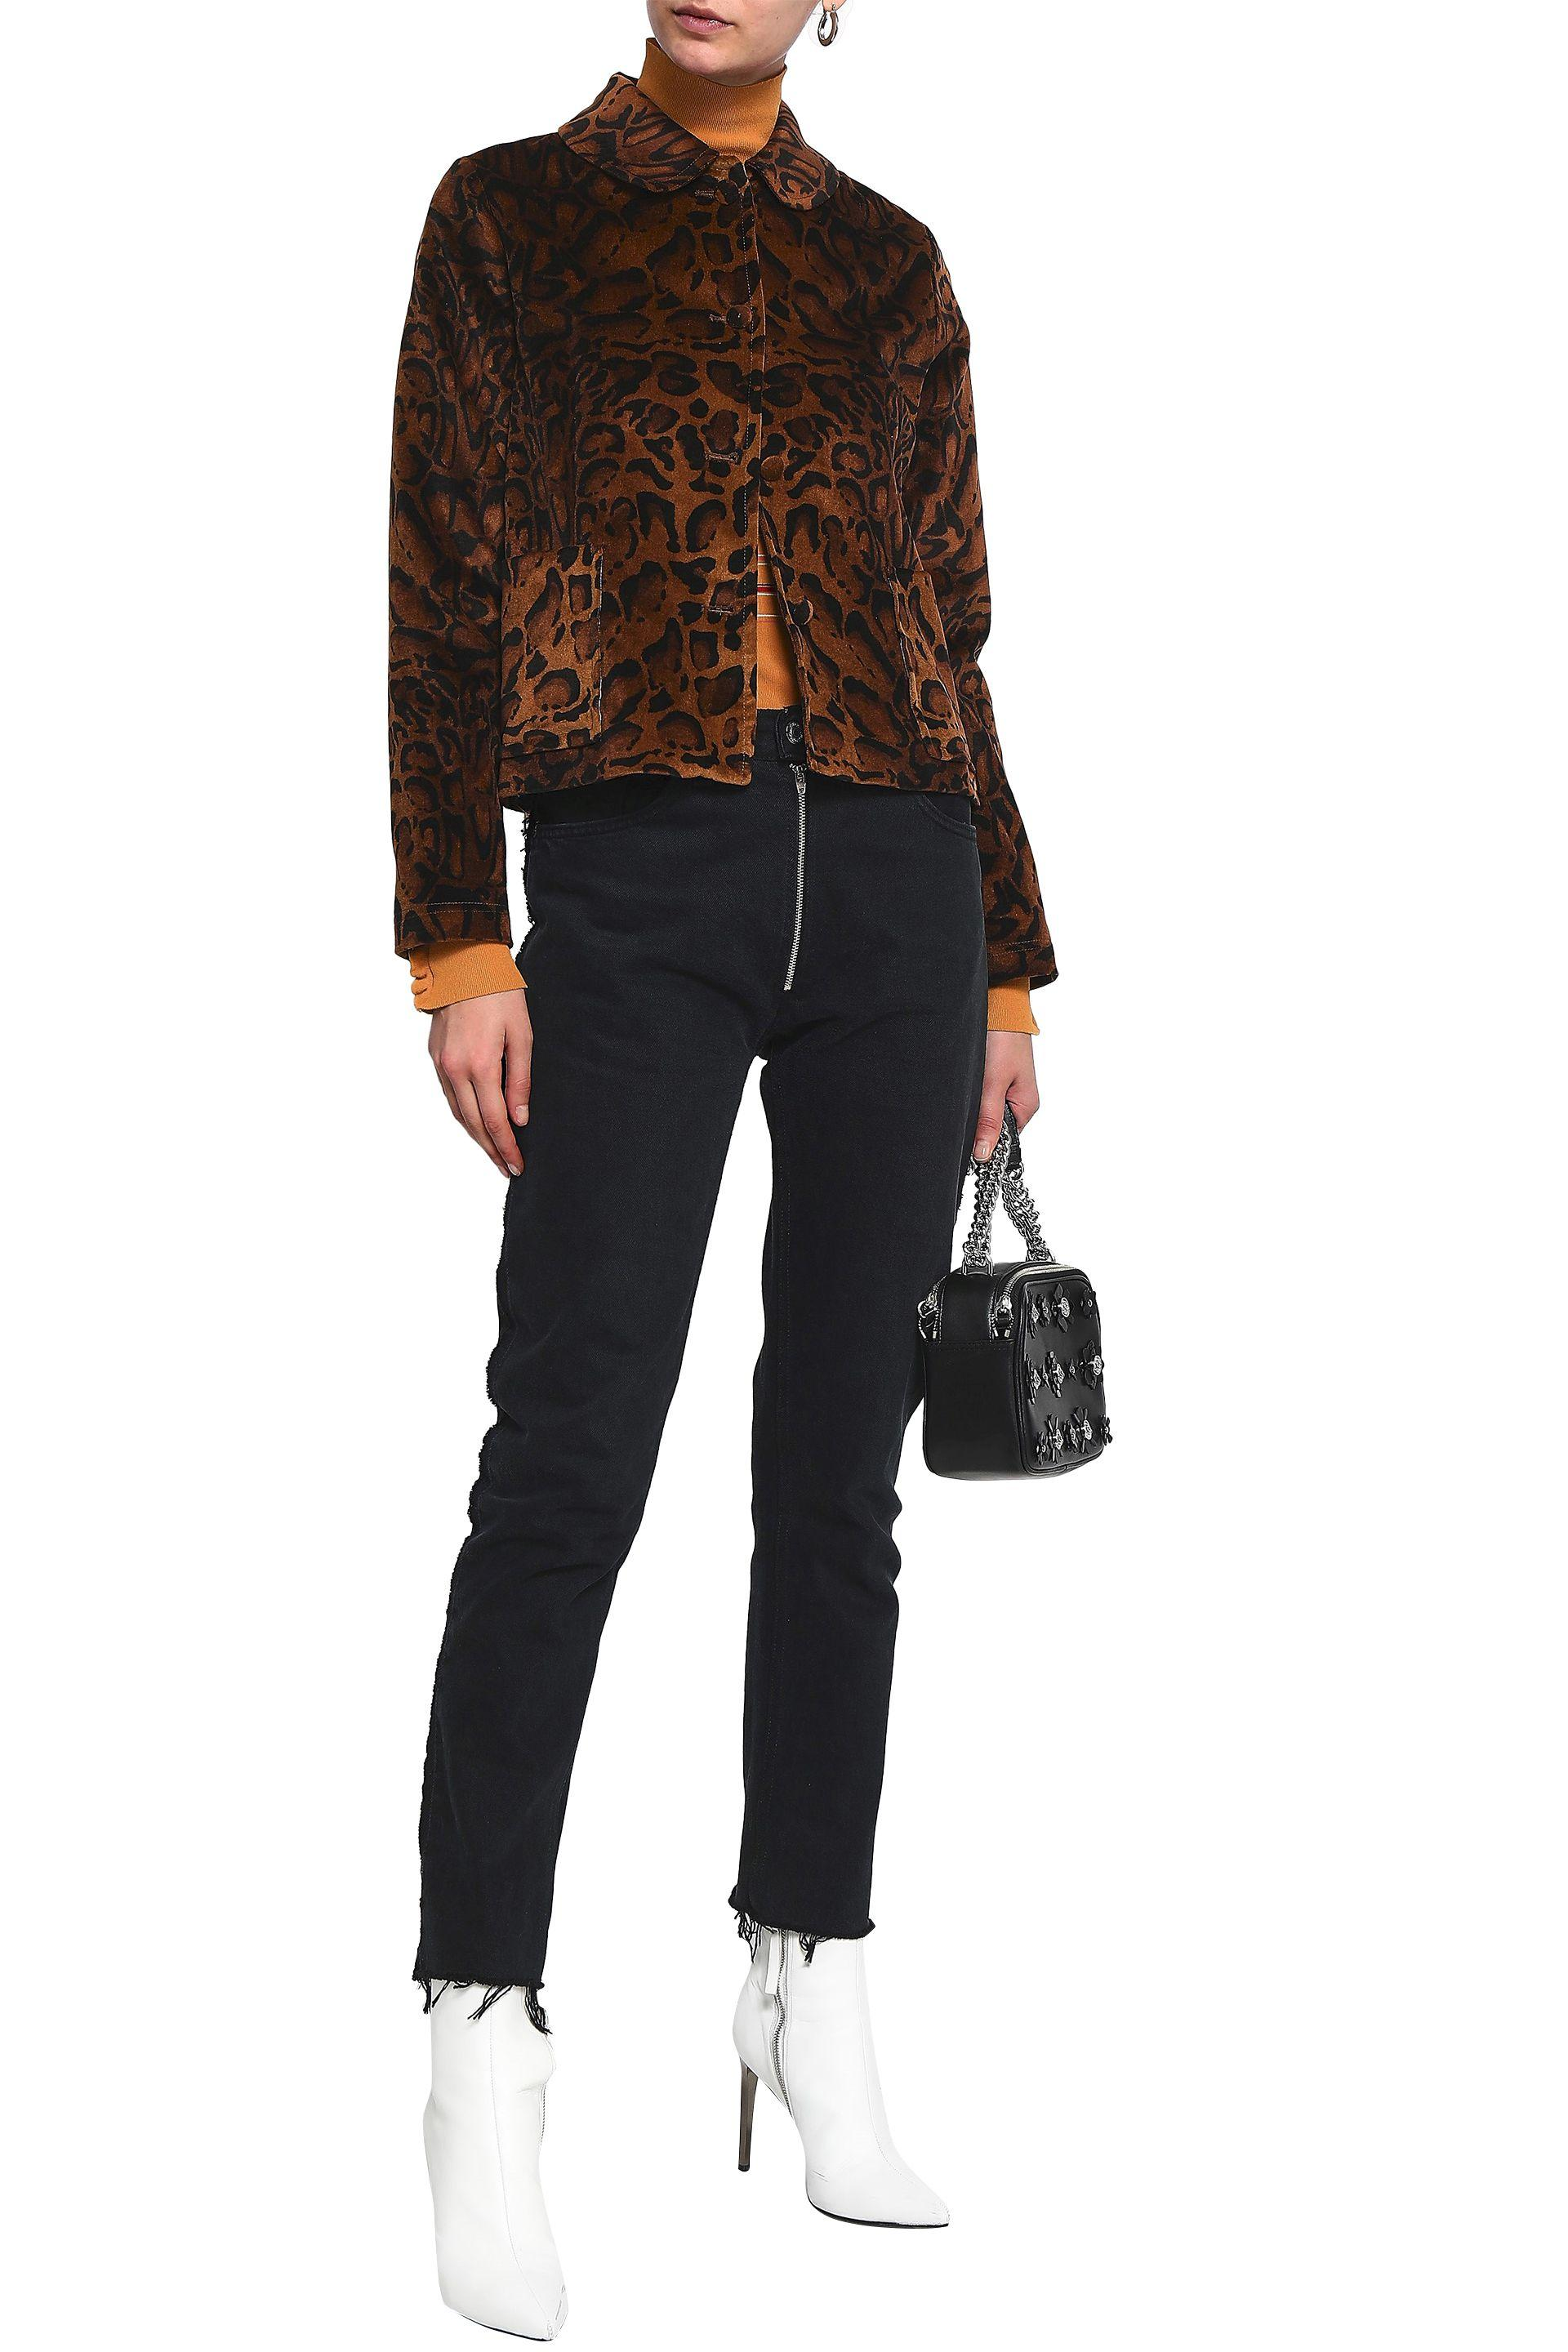 86f2f6517ad8 Shrimps - Multicolor Woman Printed Velvet Jacket Animal Print - Lyst. View  fullscreen